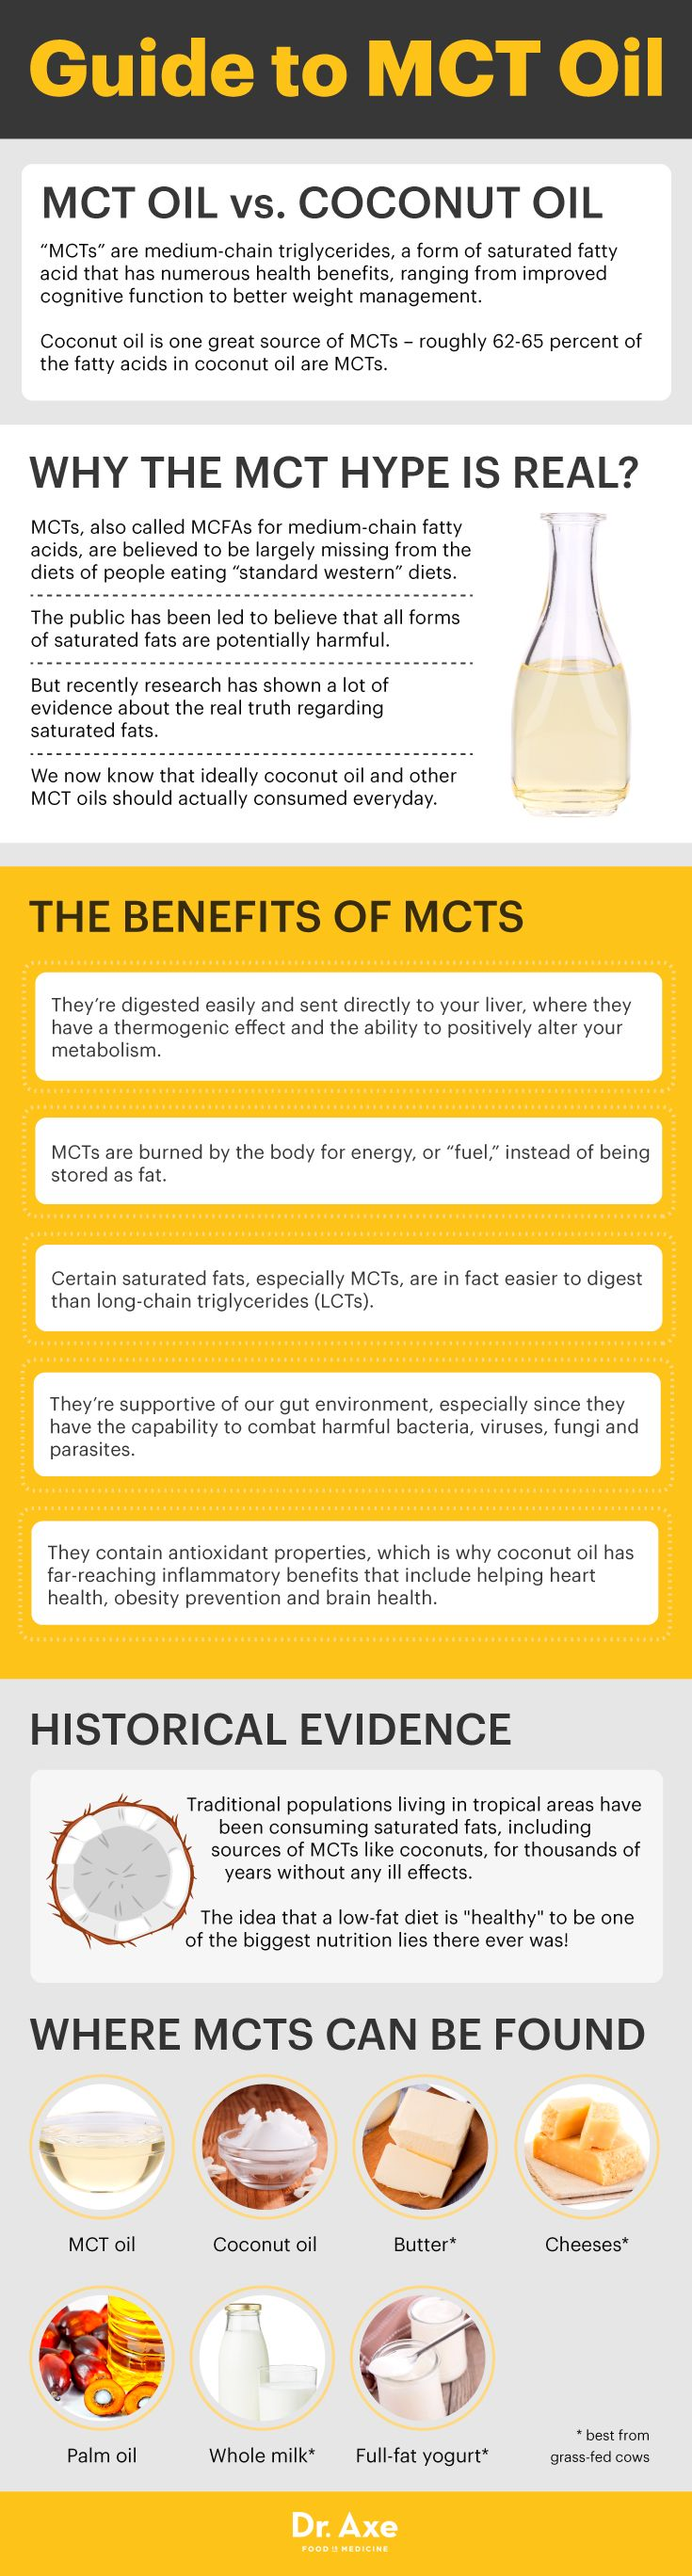 Is This Fatty Oil Actually Good for You? Mct oil